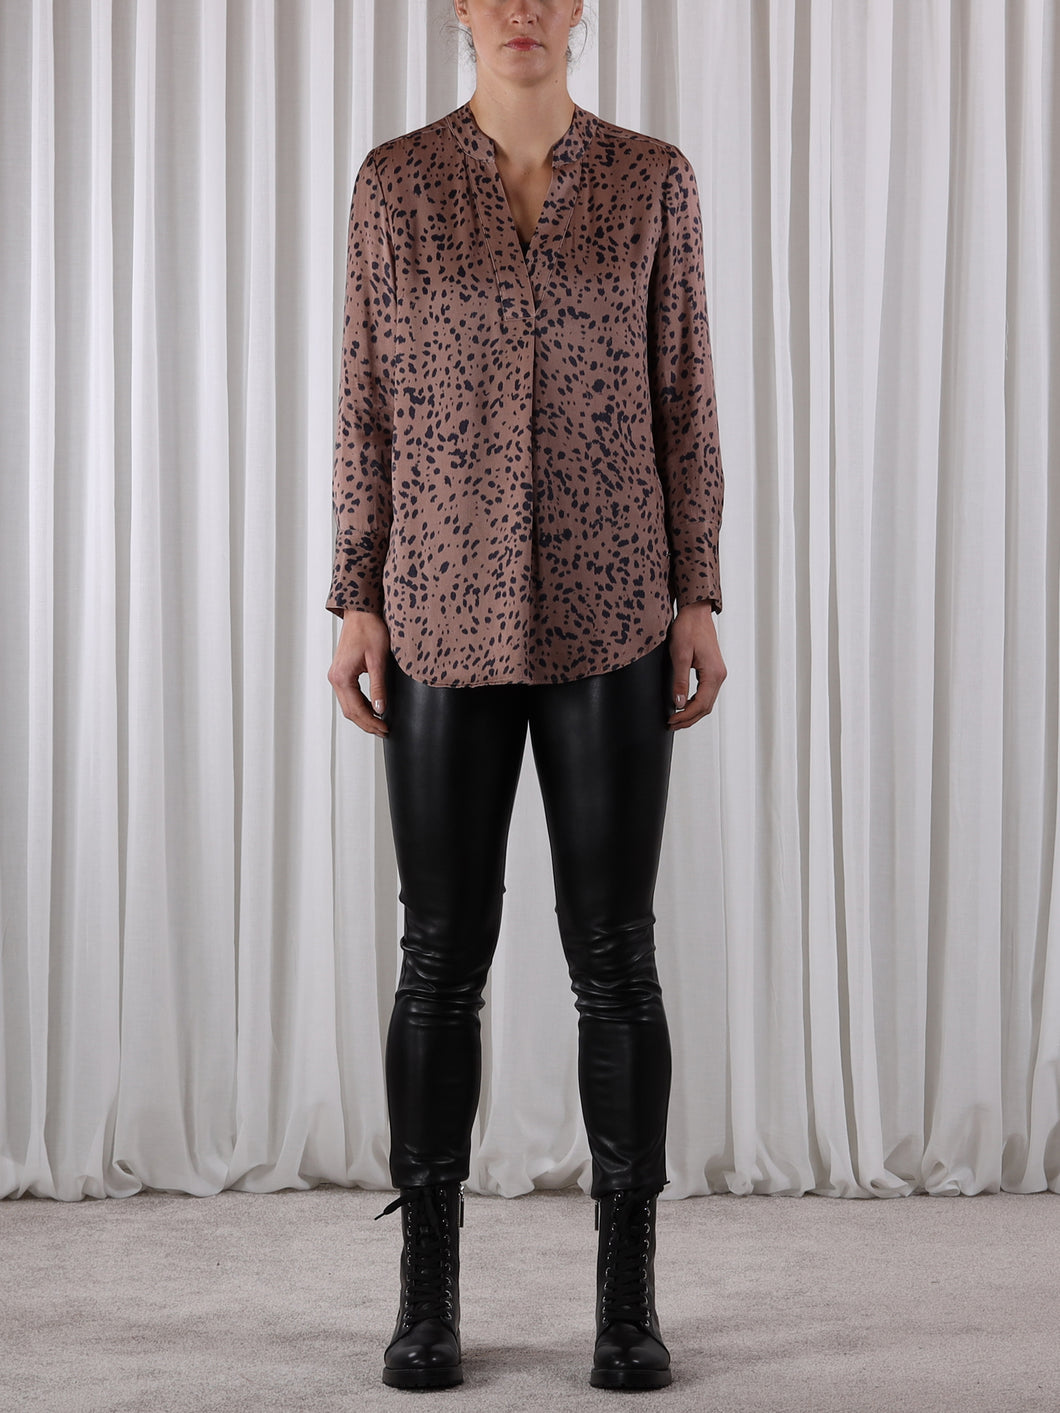 Rino & Pelle Animal Spot Blouse - Magin